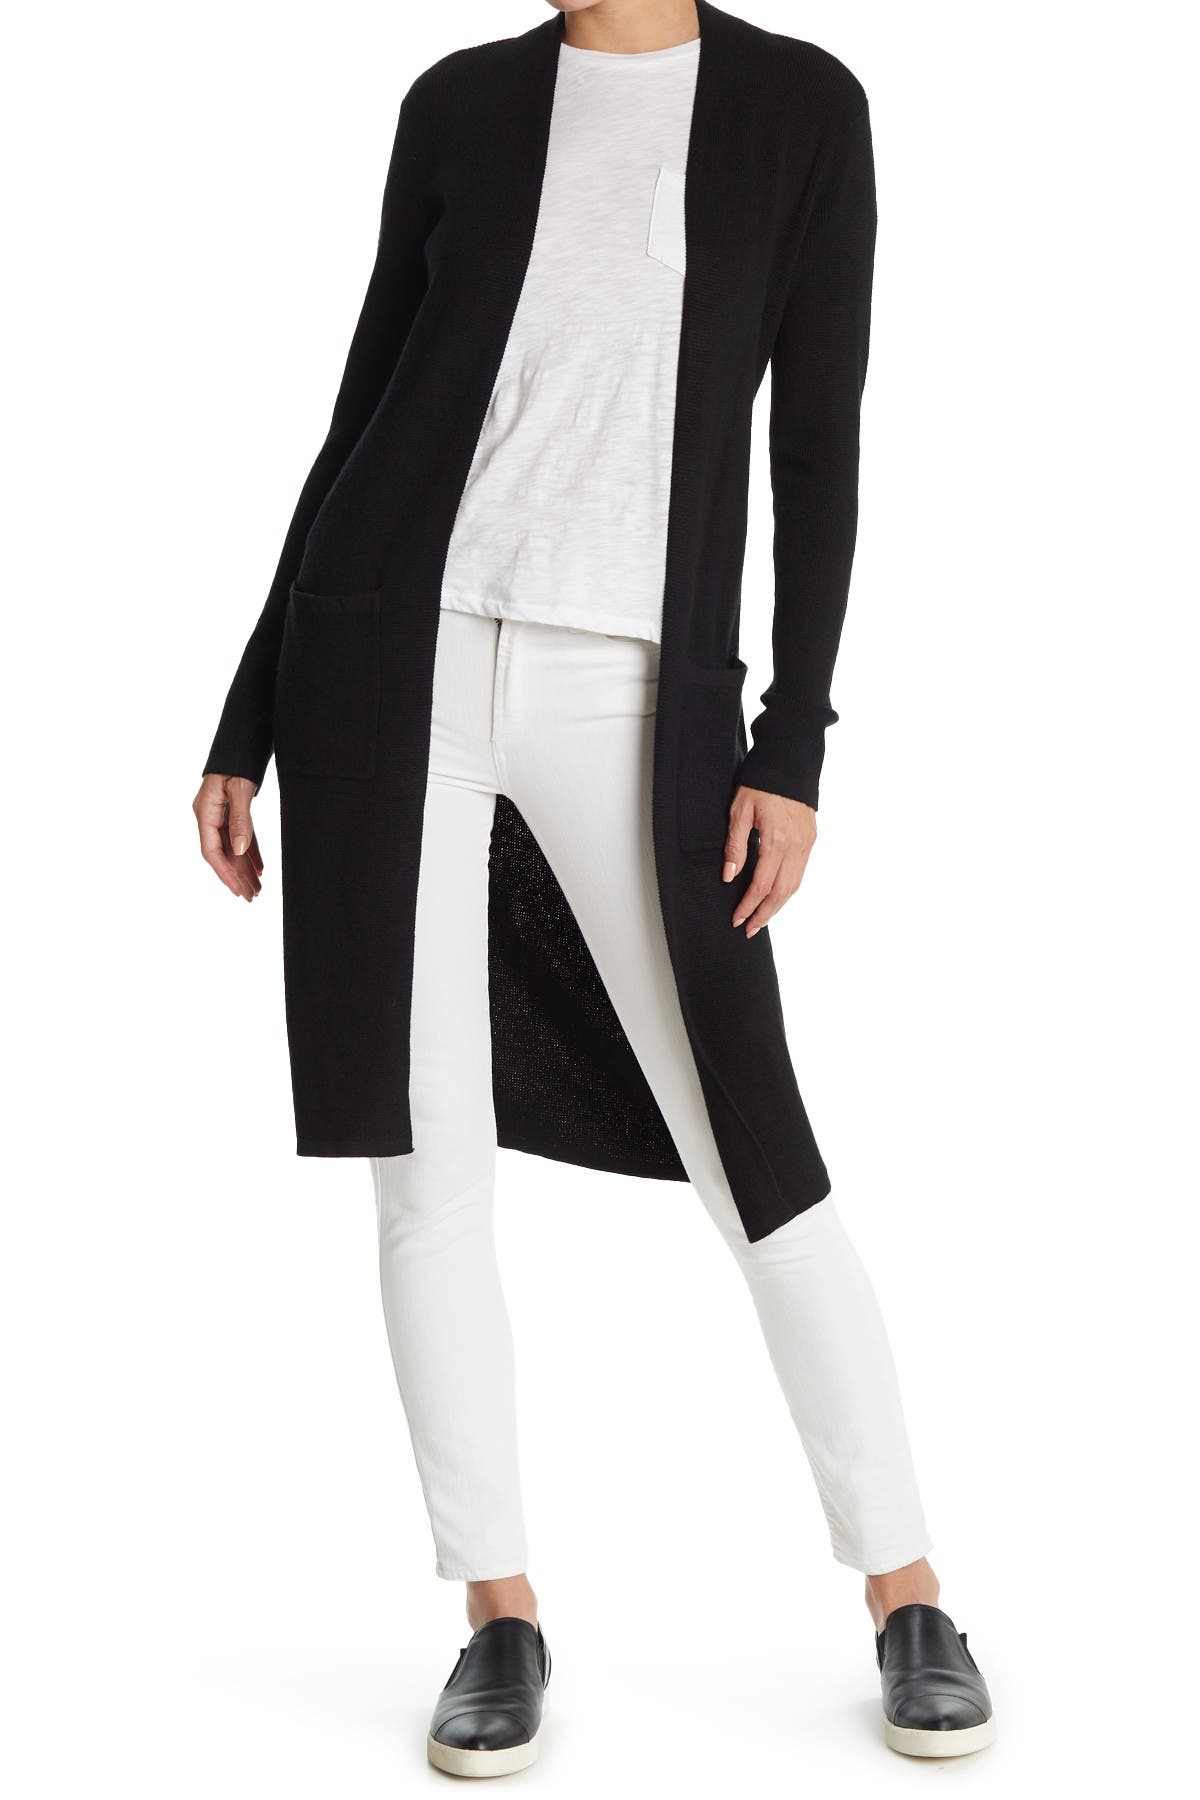 Image of Cyrus Duster Cardigan Sweater